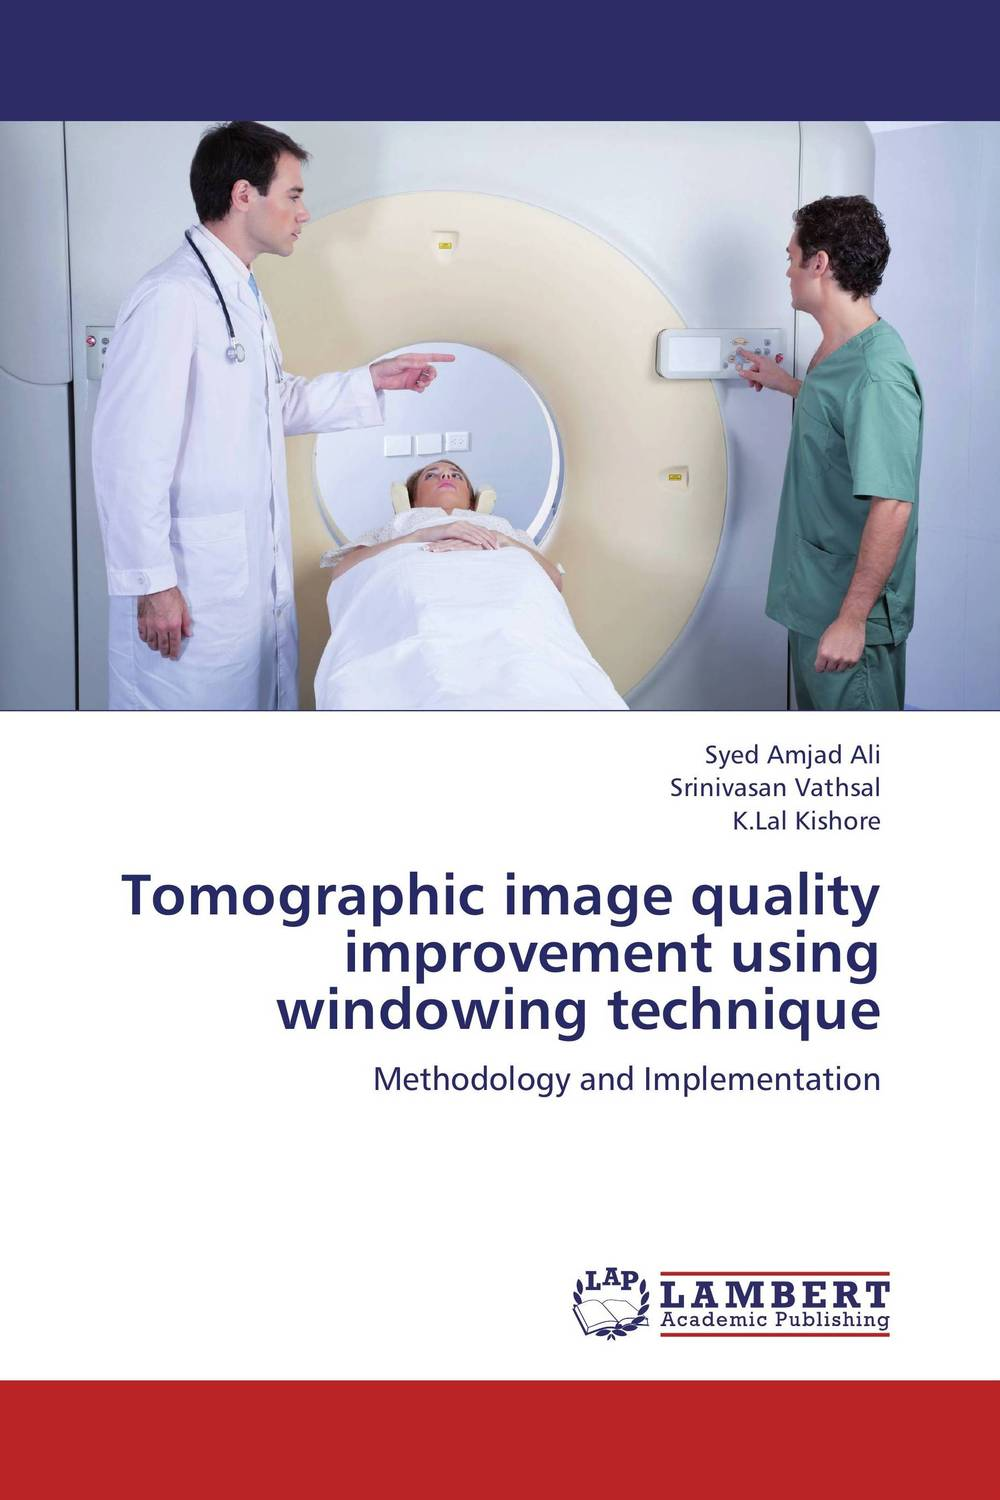 Tomographic image quality improvement using windowing technique franke bibliotheca cardiologica ballistocardiogra phy research and computer diagnosis